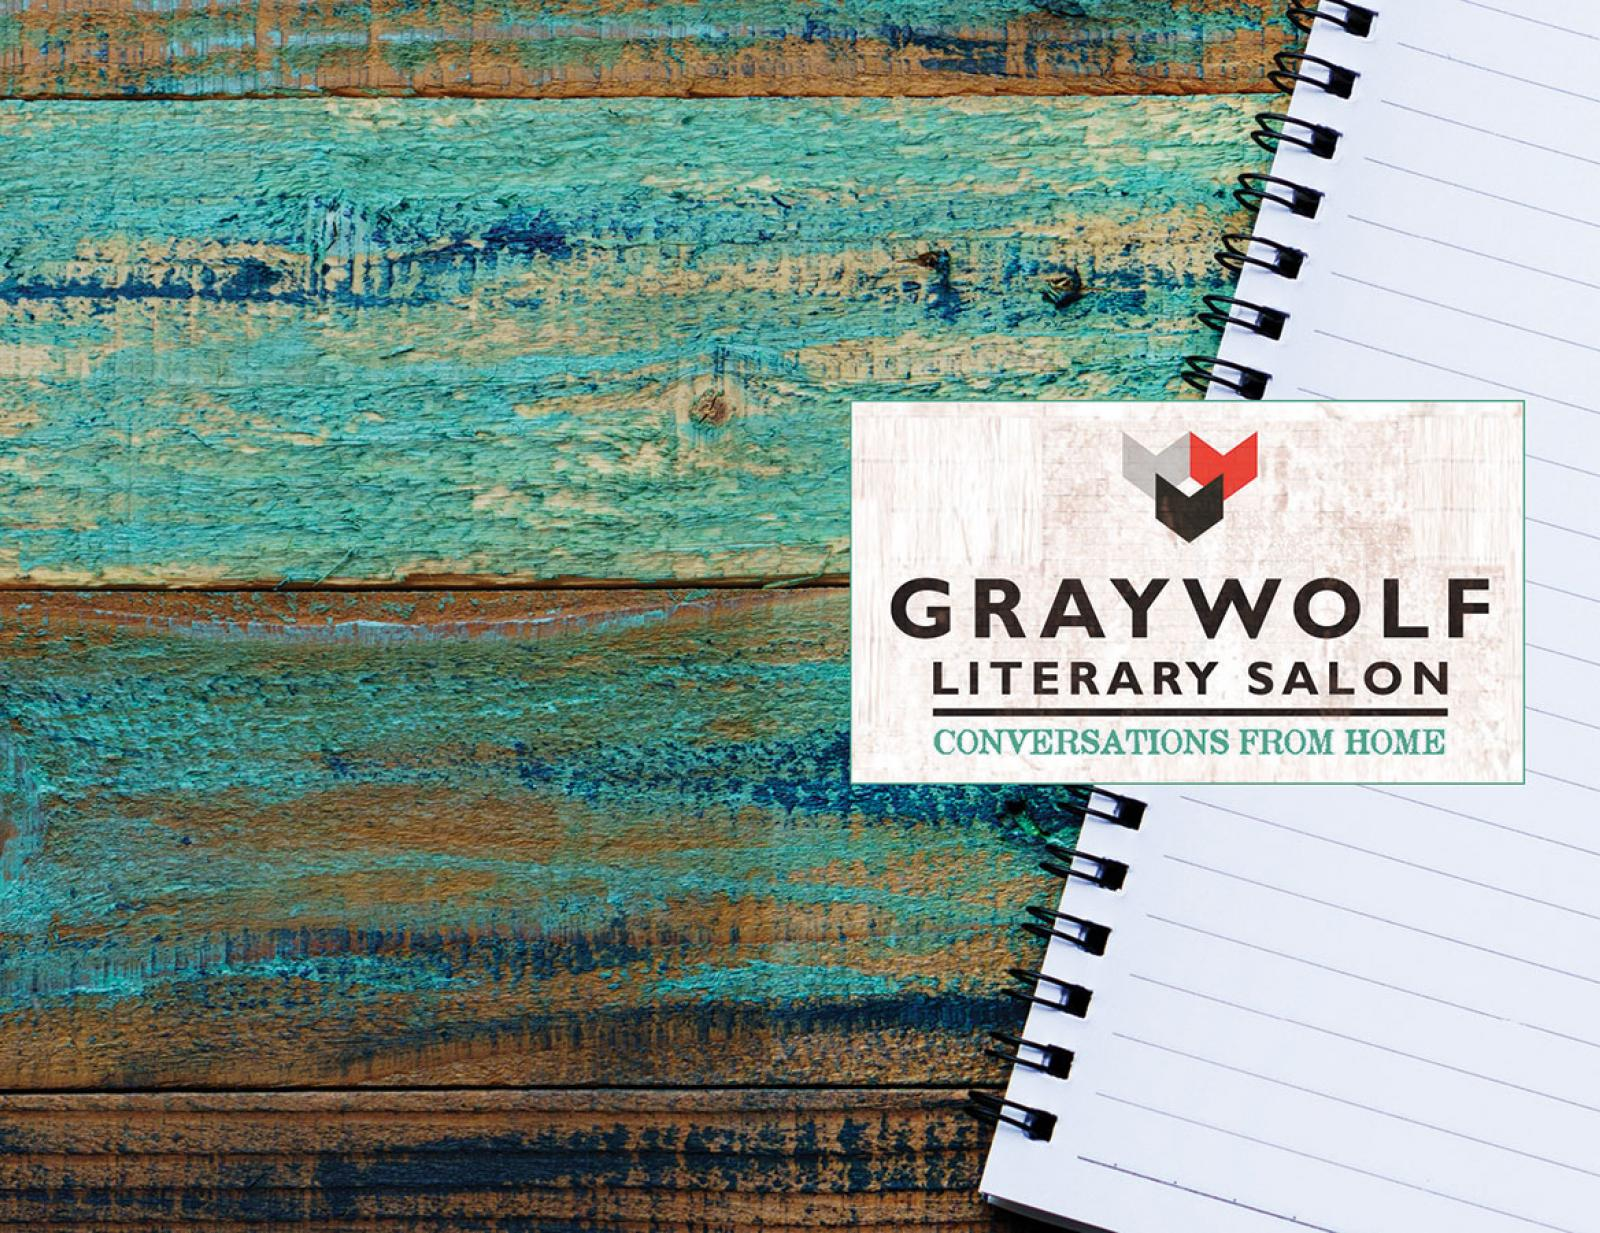 Graywolf Literary Salon: Conversations from Home